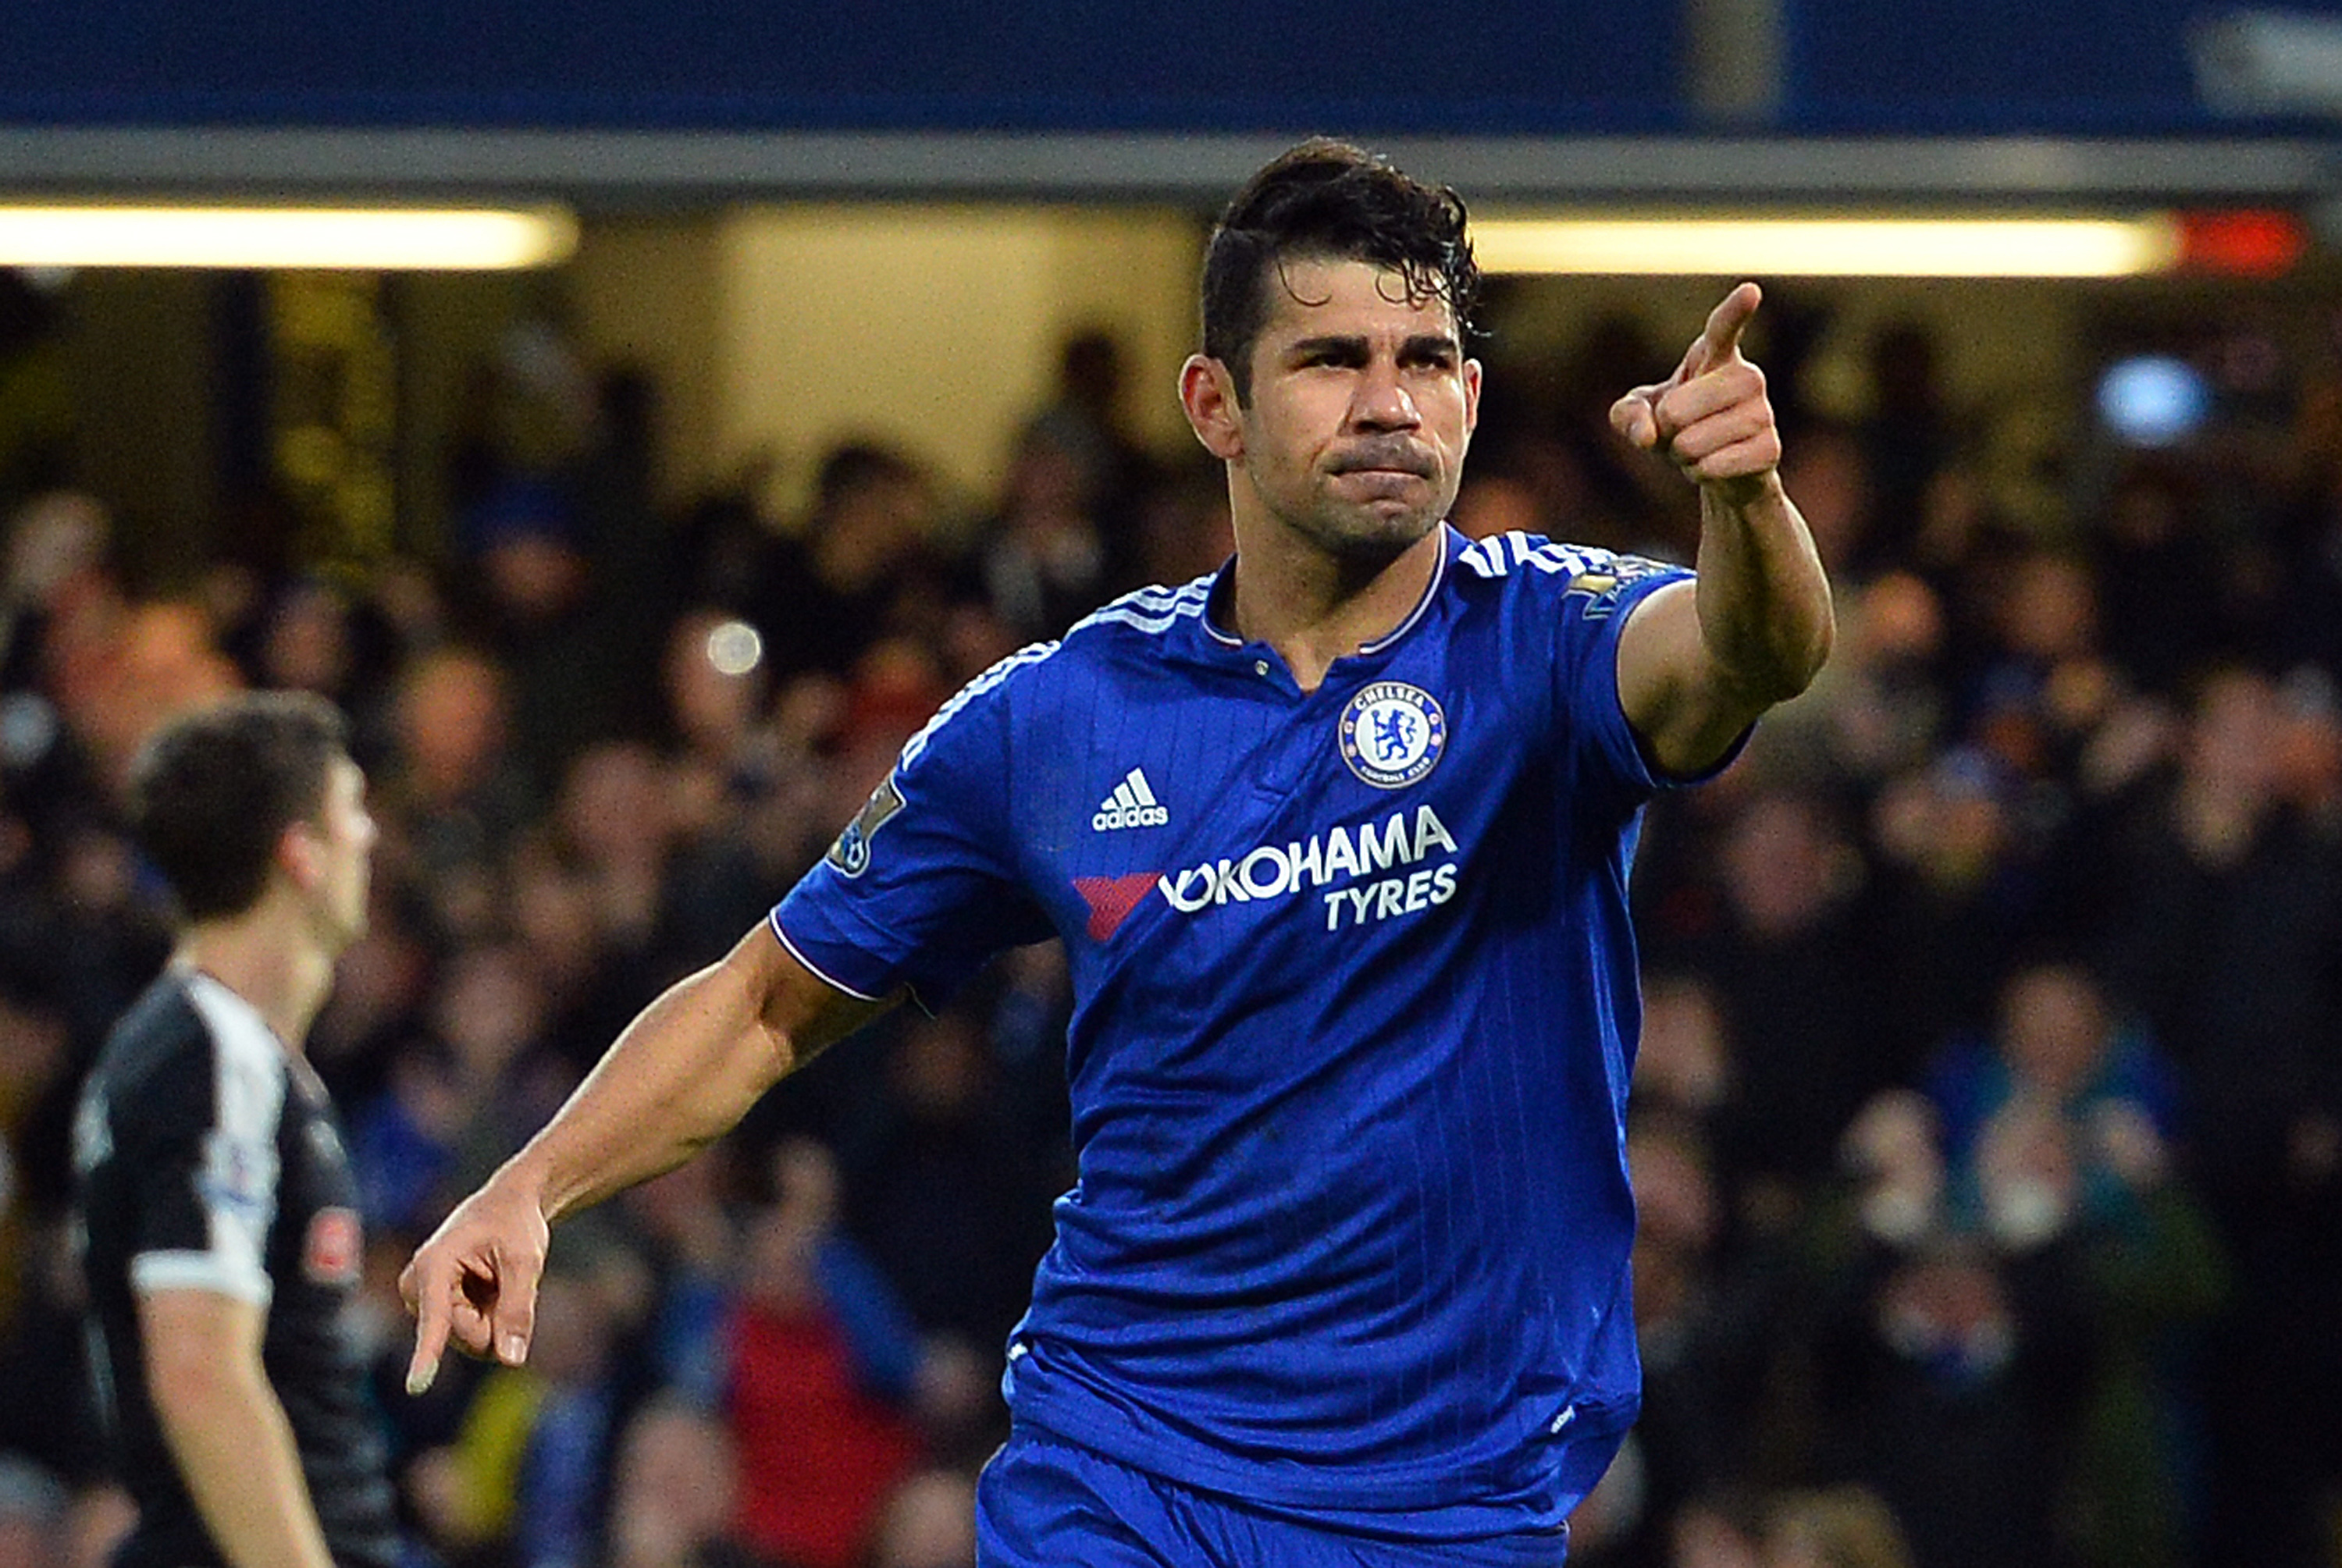 Chelsea v Scunthorpe United FA Cup: Team news, injury news, team line ups and TV times